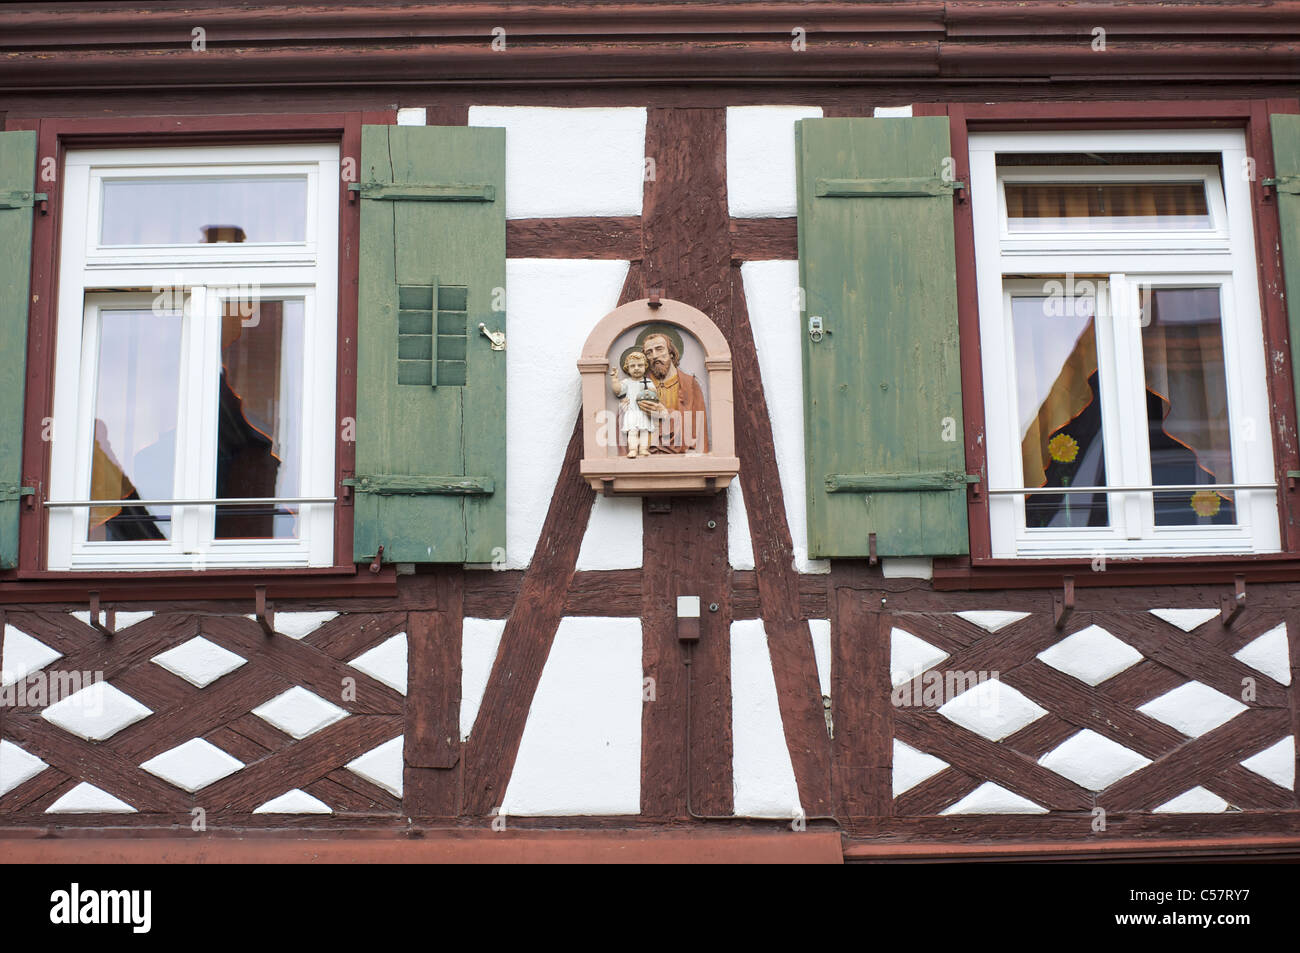 Detail of a house with fachwerk and a Christian mural in the city of Haslach, Schwarzwald, Baden-Wurttemberg, Germany - Stock Image